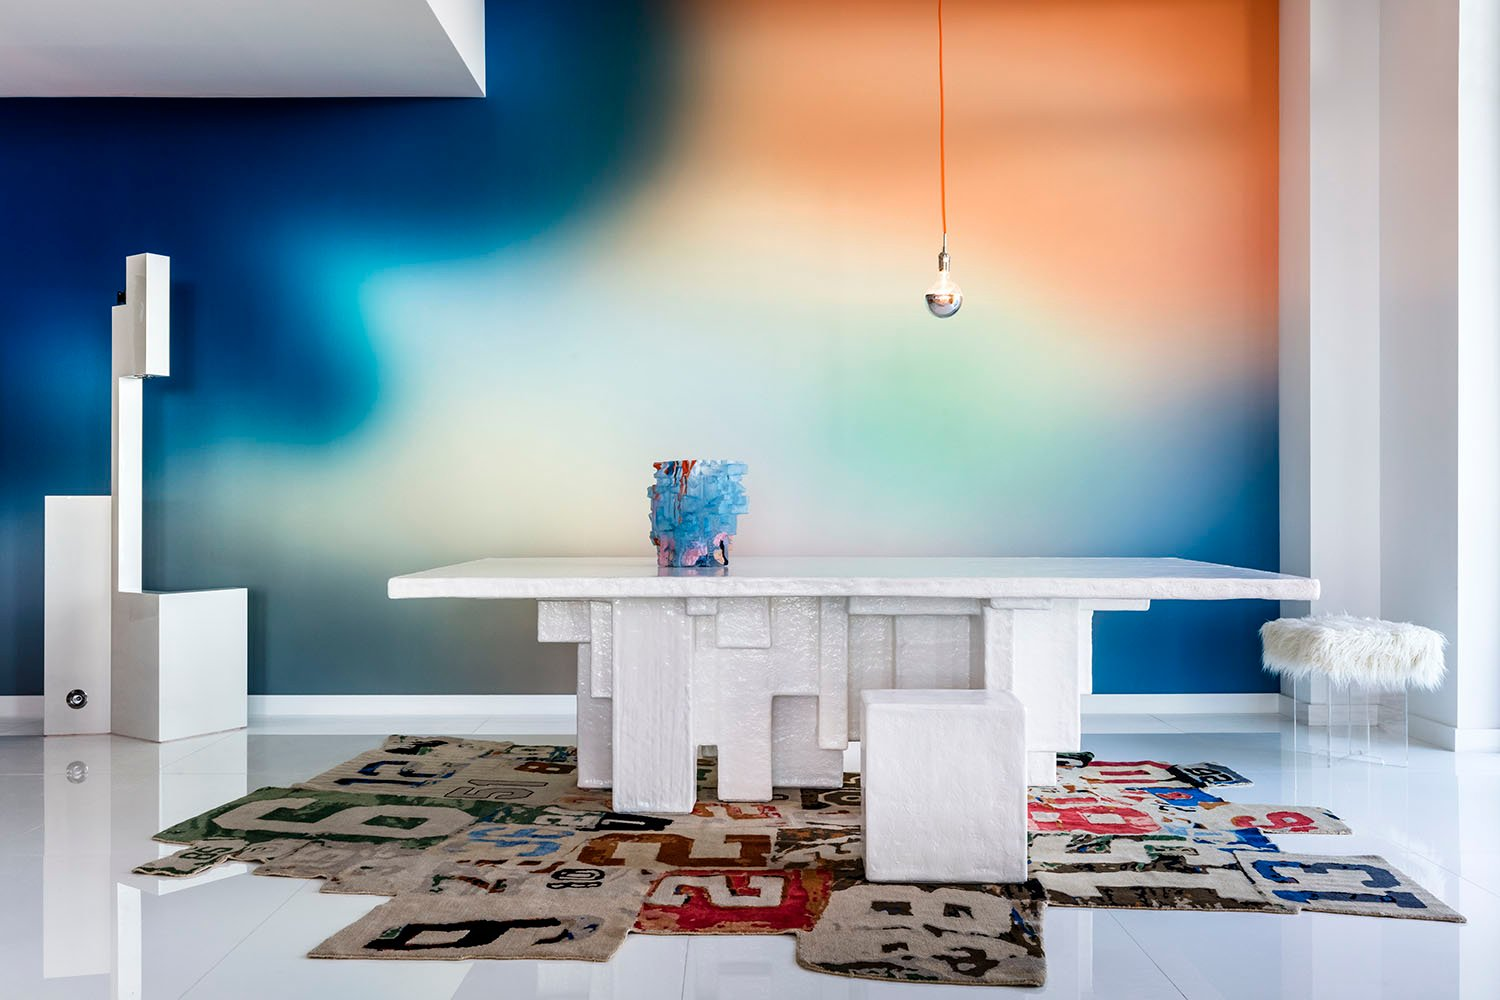 The dining area is set against a backdrop of Aura wallpaper by Calico, illuminated by lighting designed by the illustrious Johanna Grawunder. Kris Tamburello